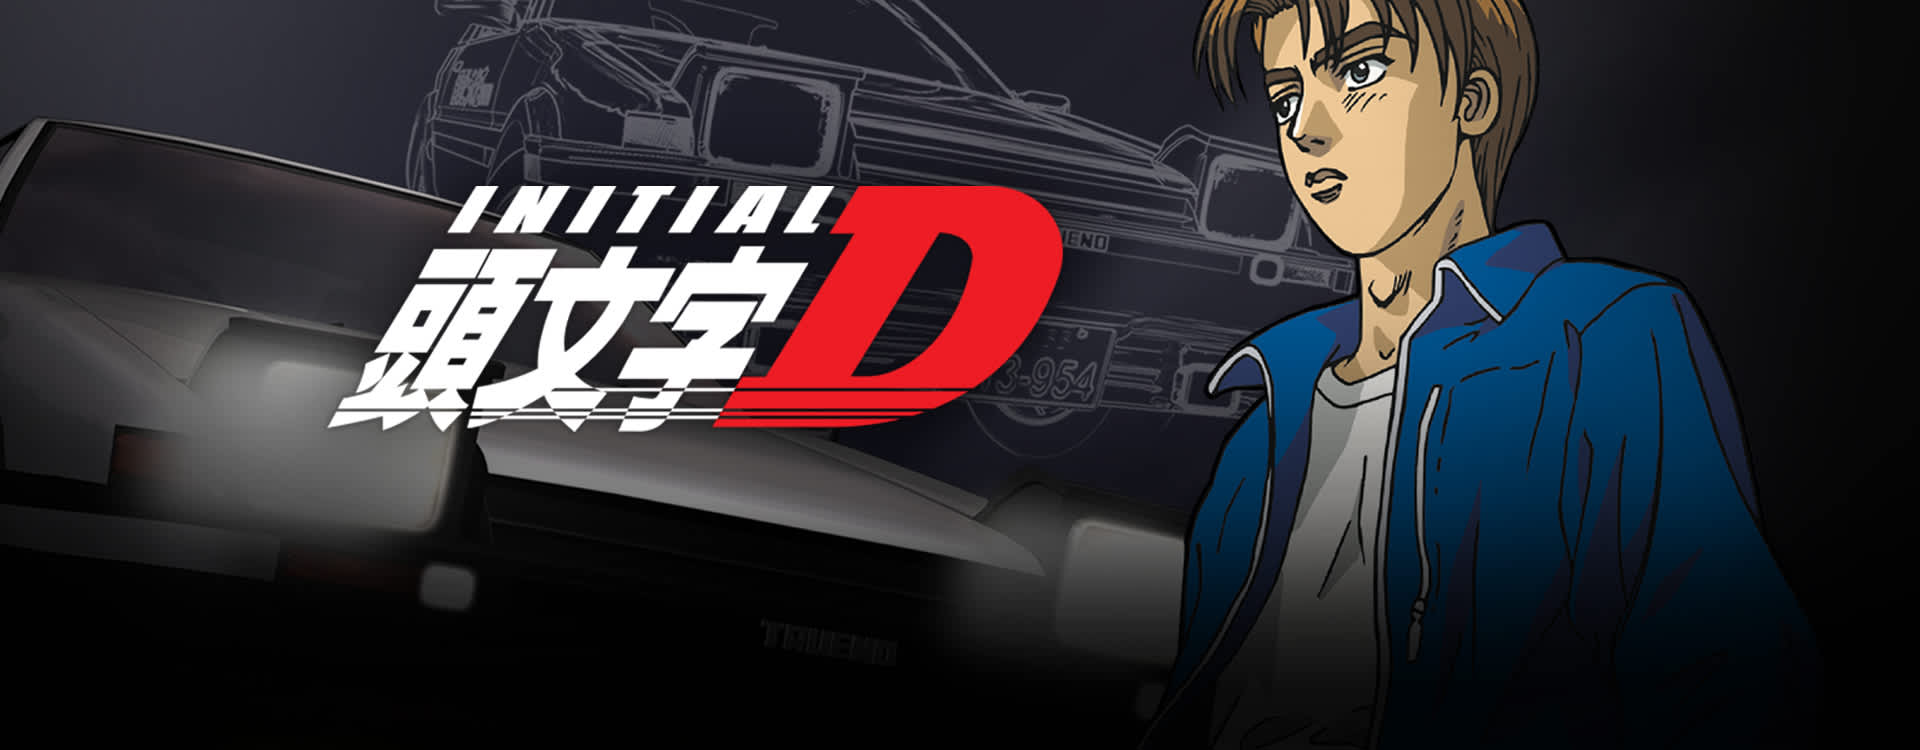 Watch Initial D Episodes Sub & Dub | Action/Adventure, Shounen ...